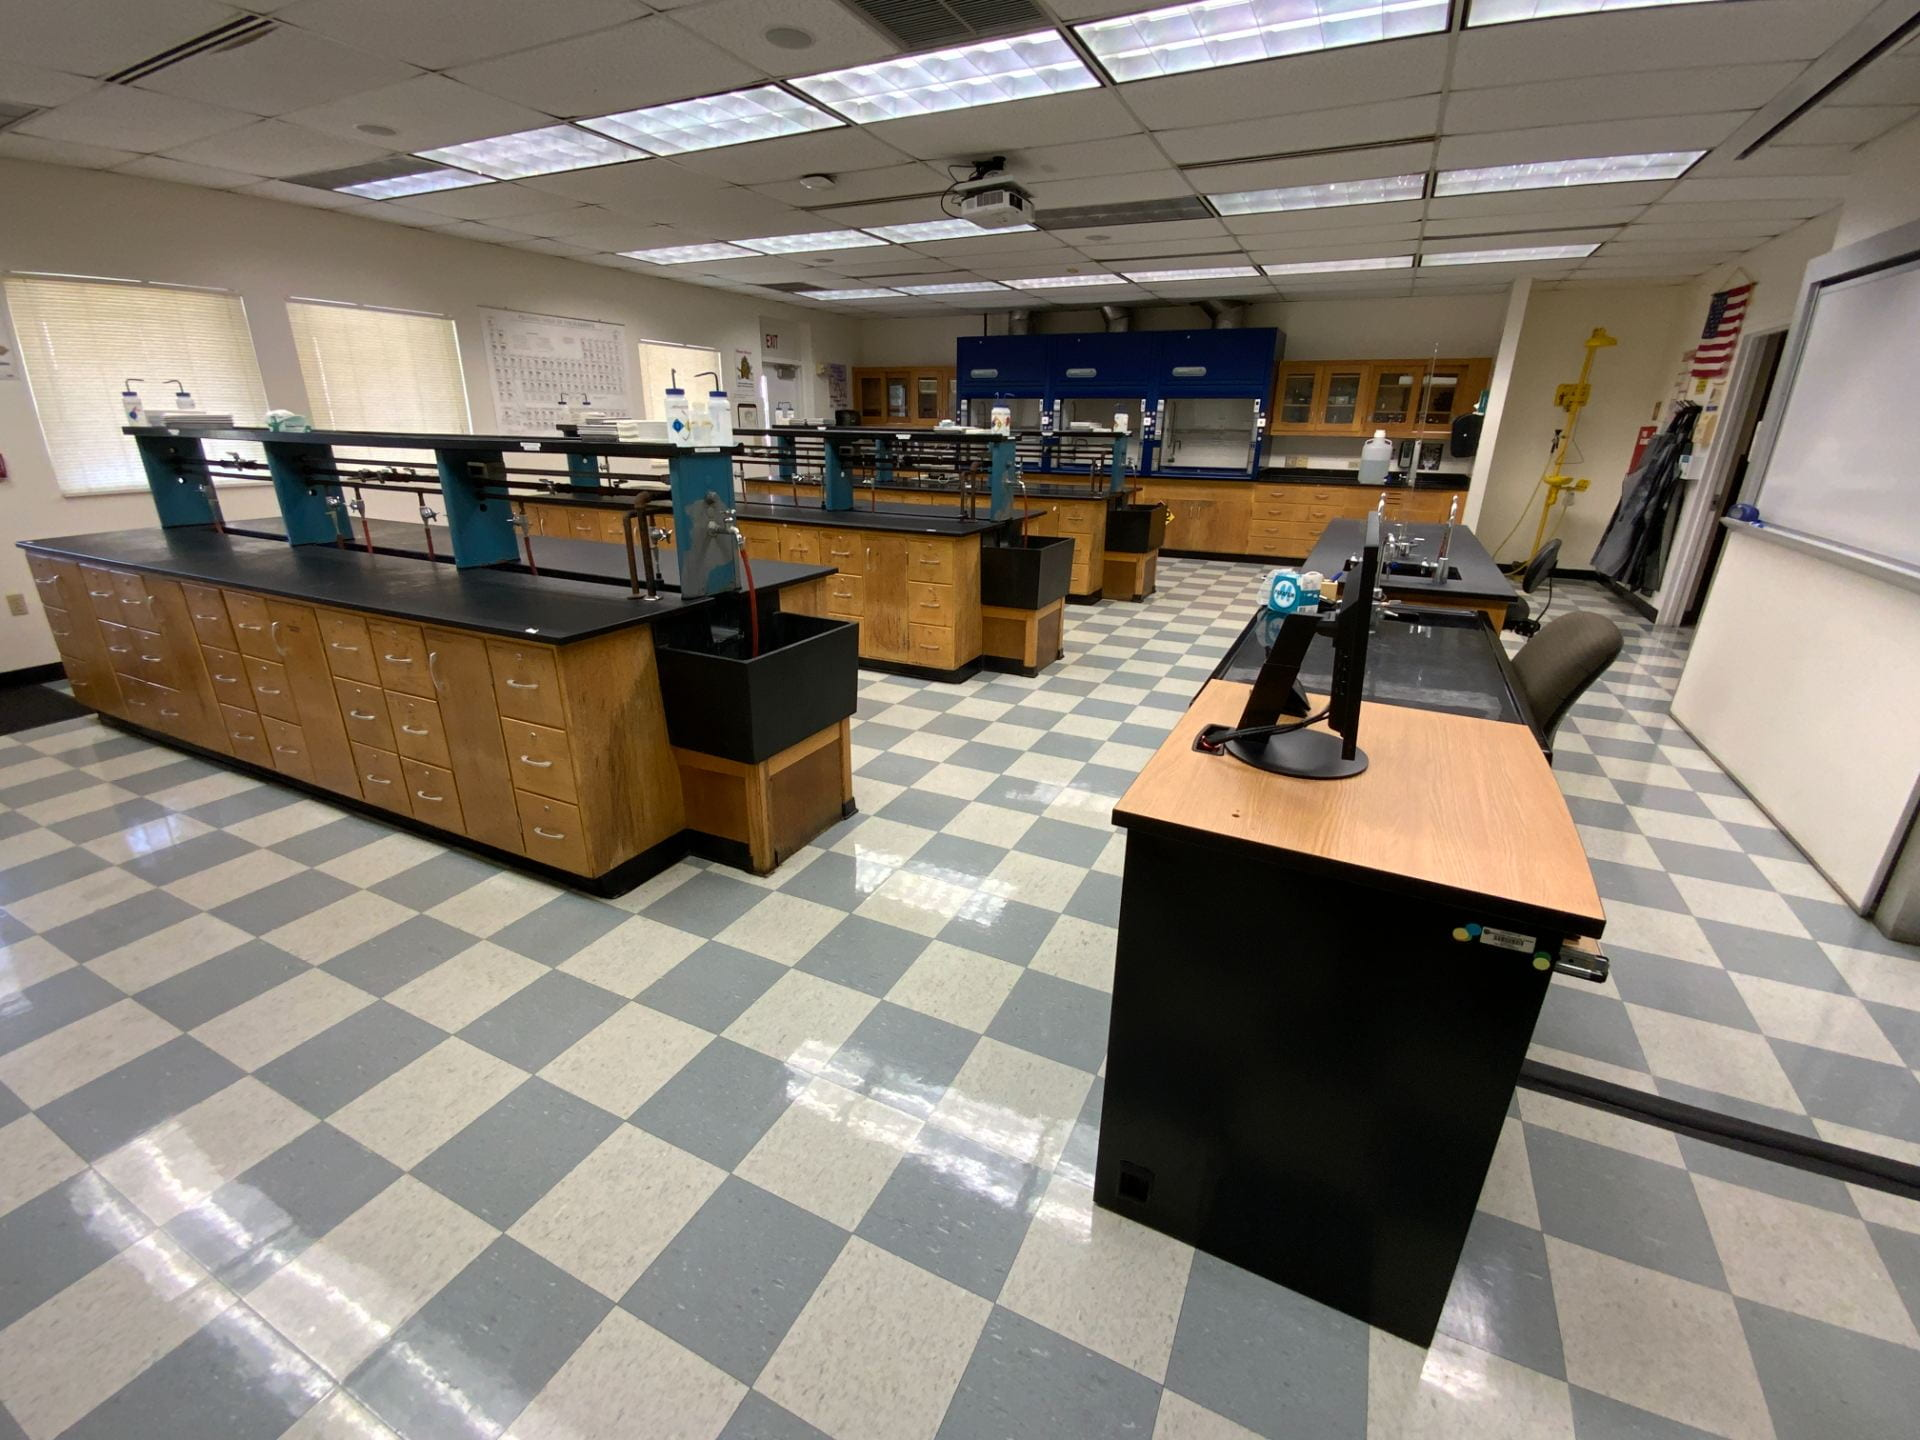 Image of North Campus Chemistry Lab building 57 room 207.